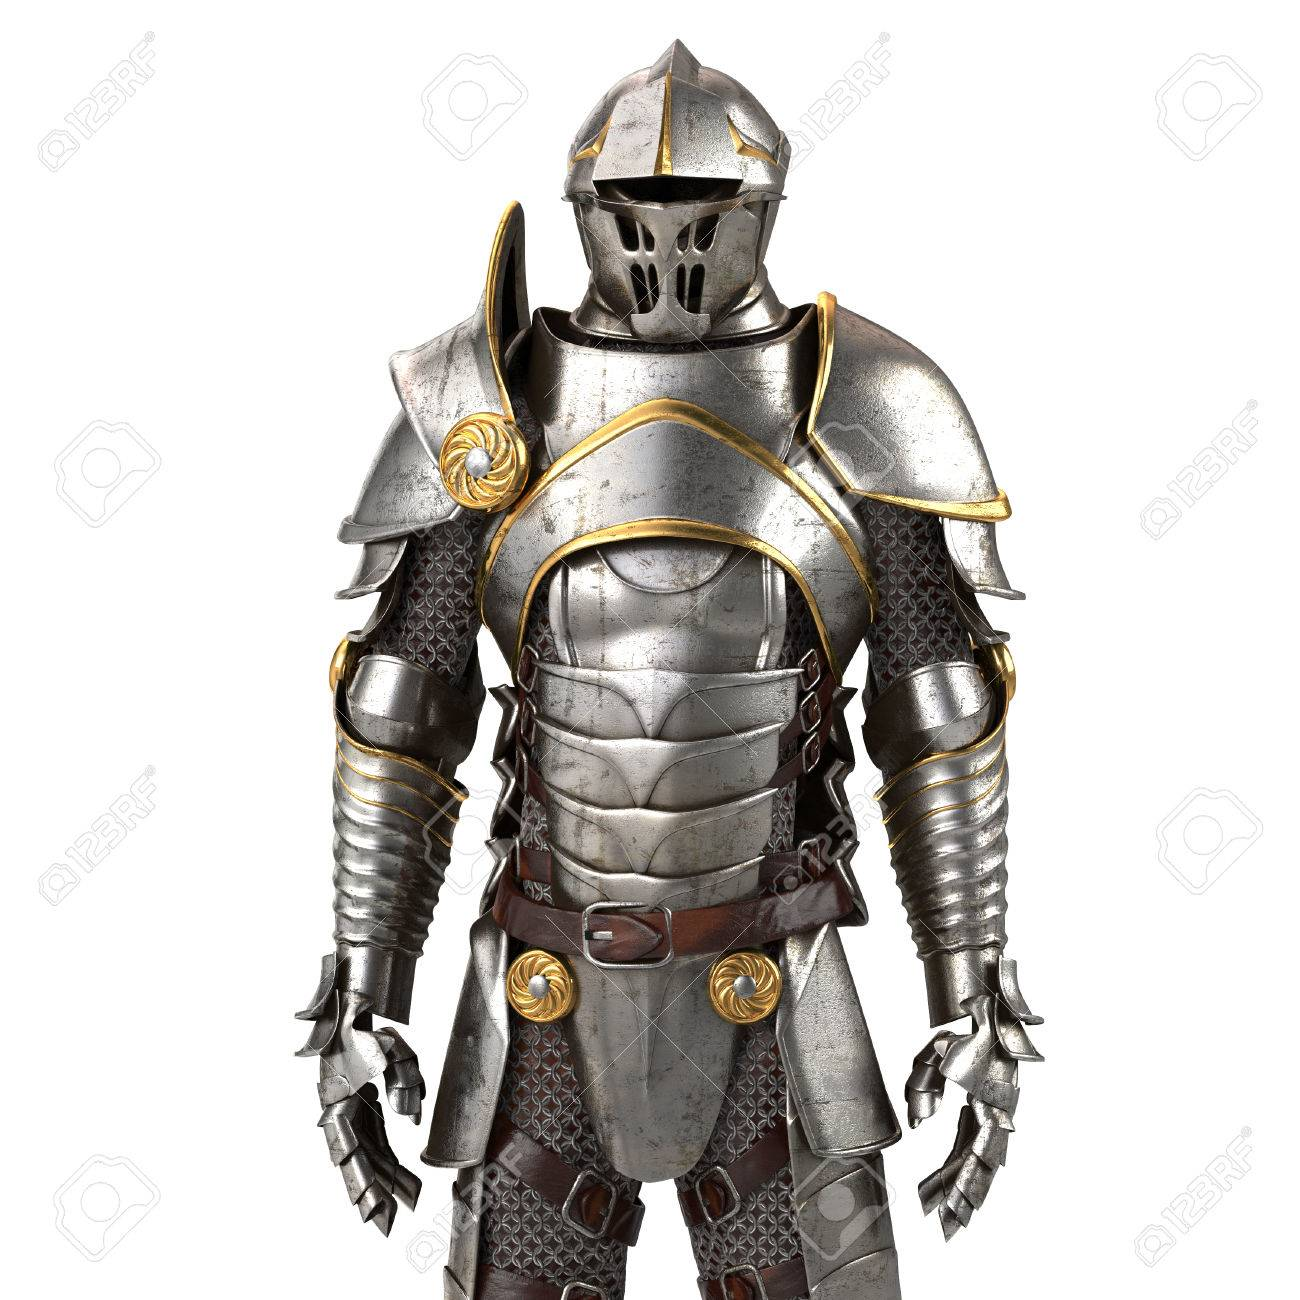 Image result for suit of armor